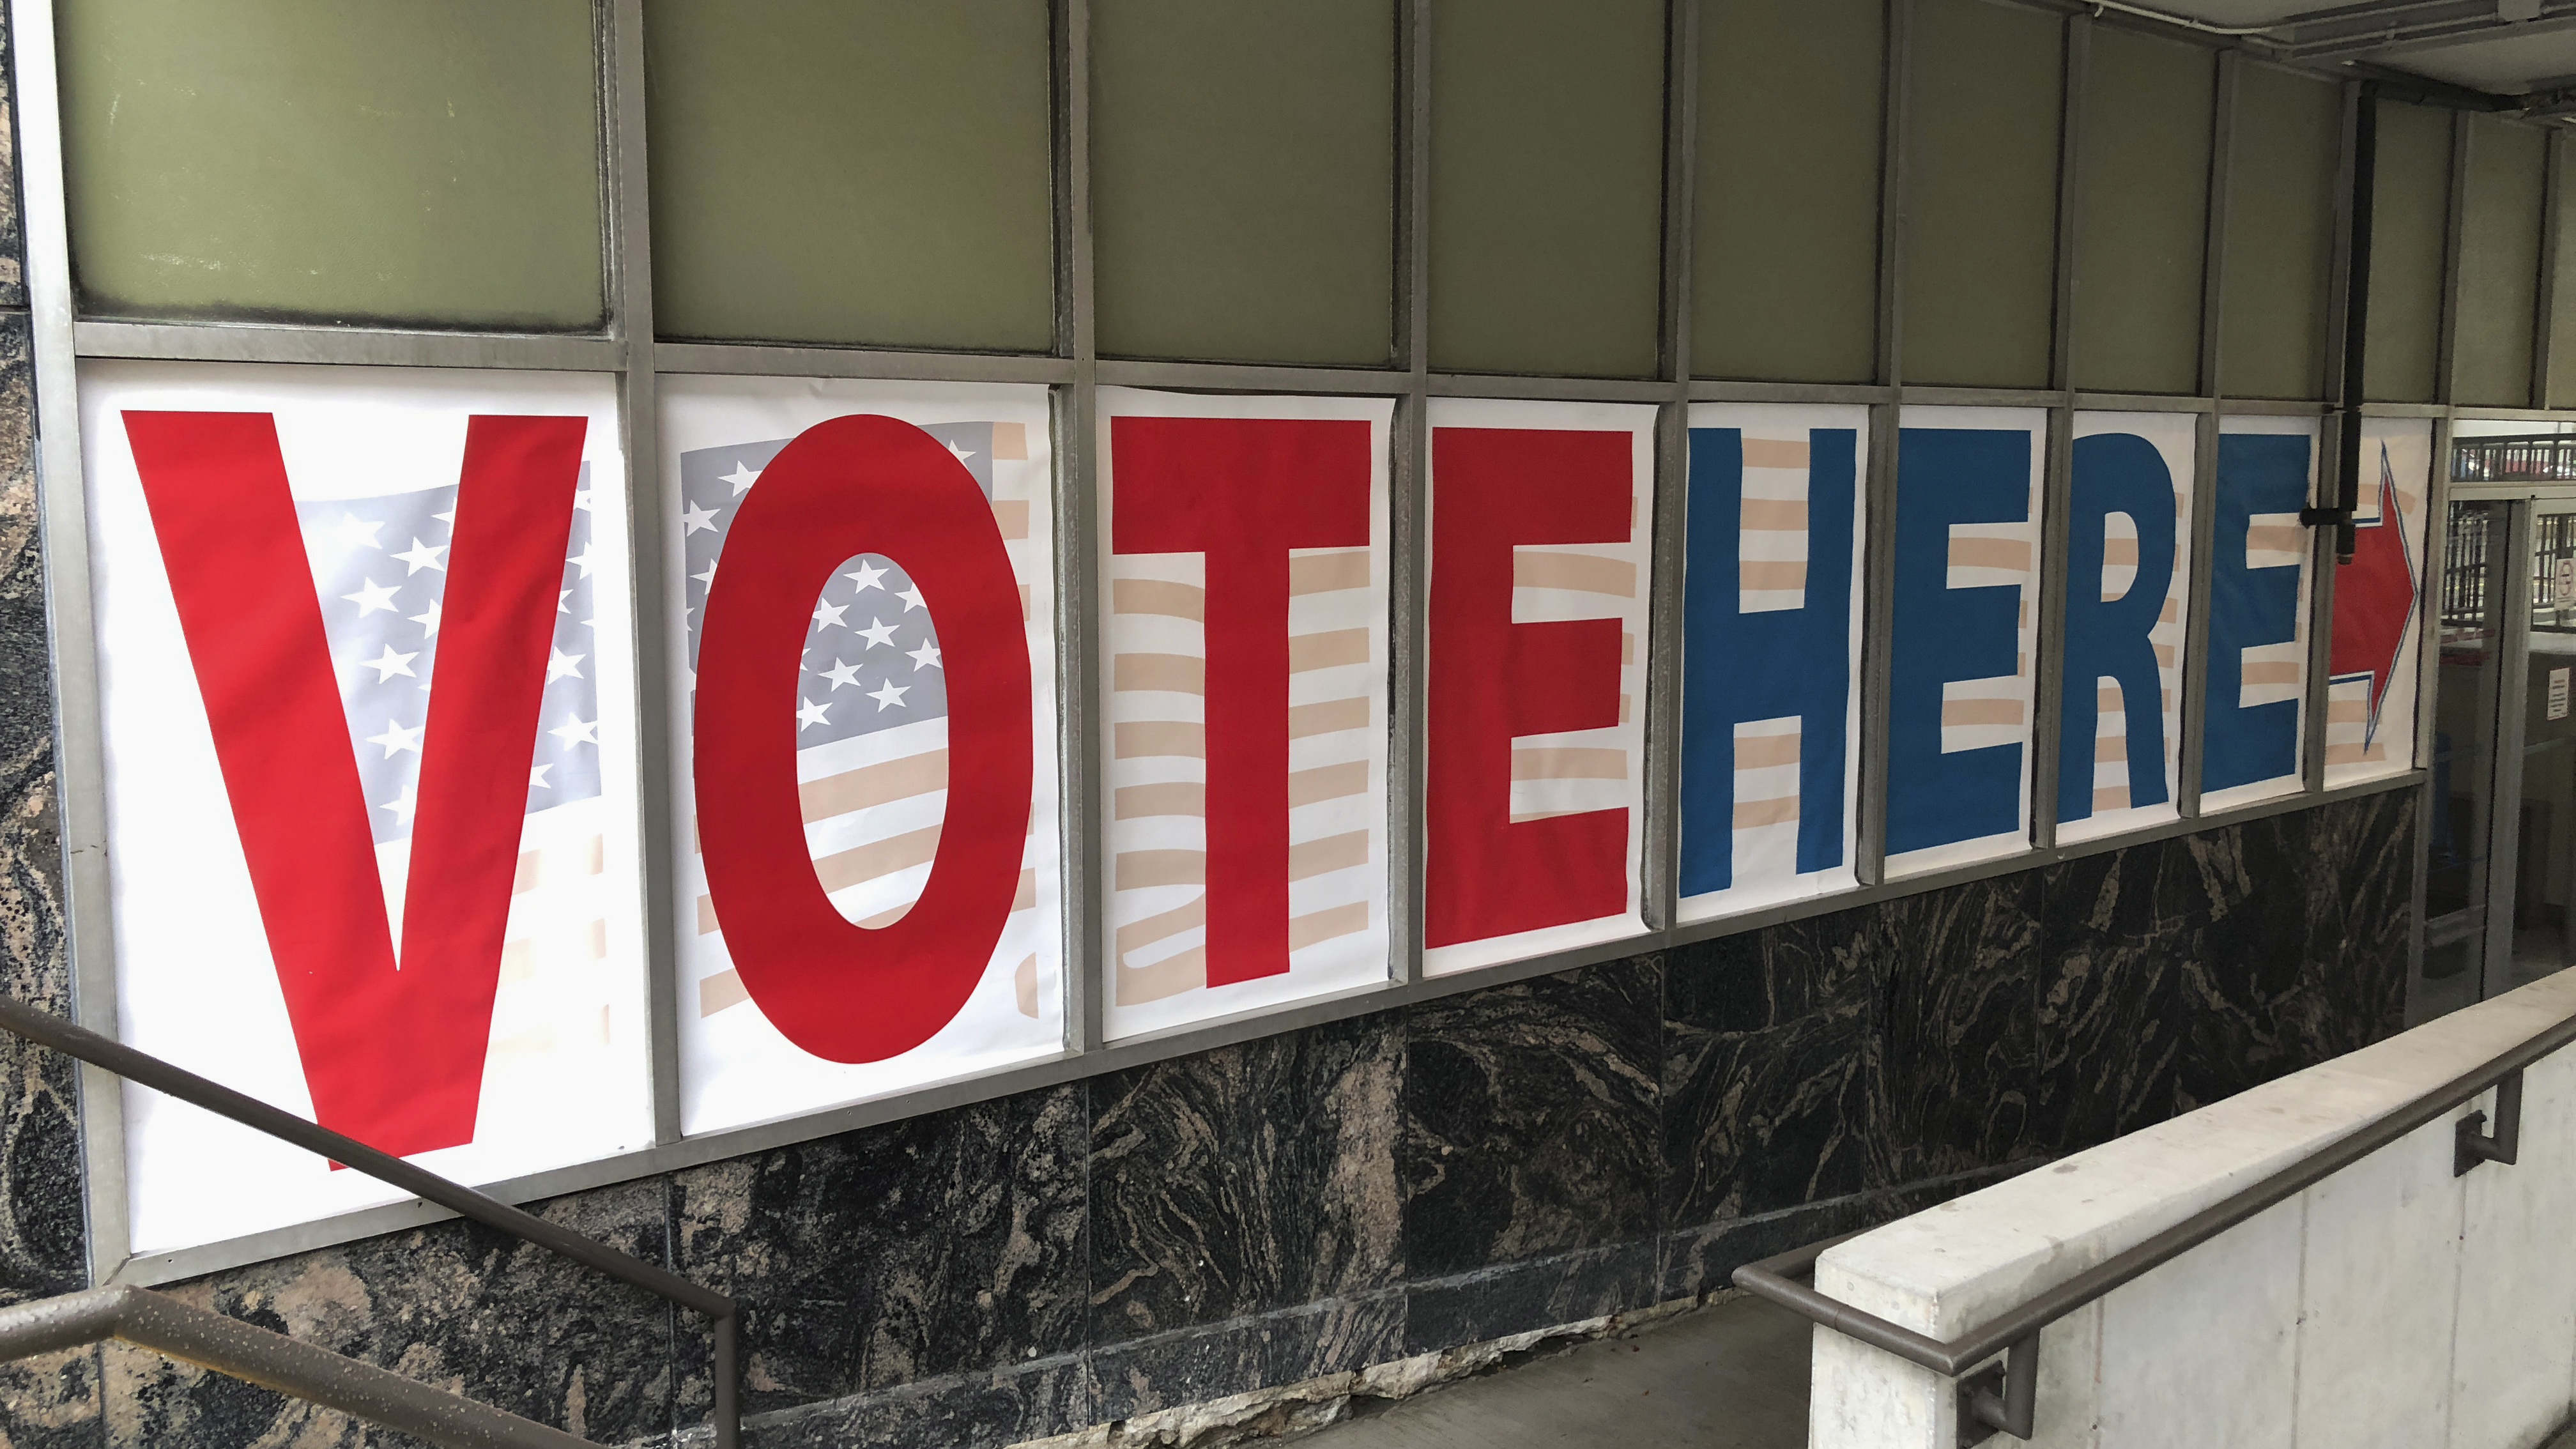 Microsoft's offers software tools to secure elections